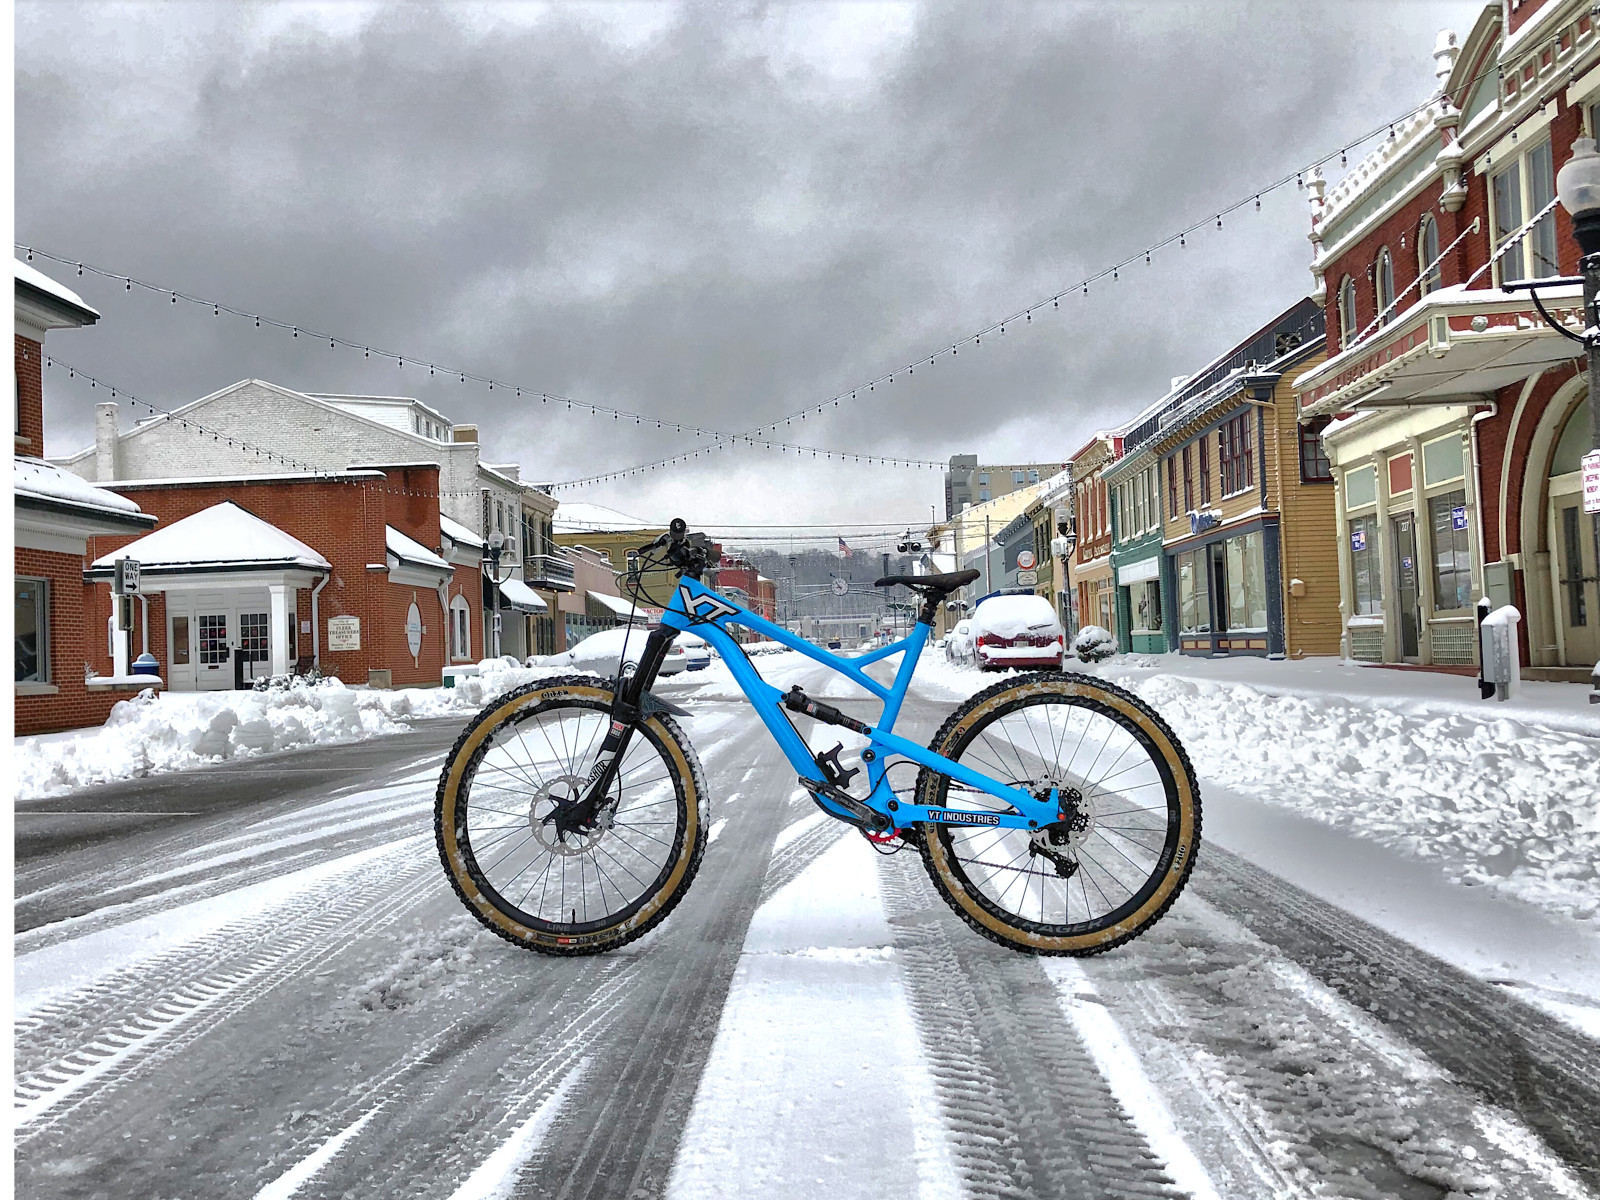 YT Jeffsy 27 - 2019 Vital Bike of the Day Collection - Mountain Biking Pictures - Vital MTB